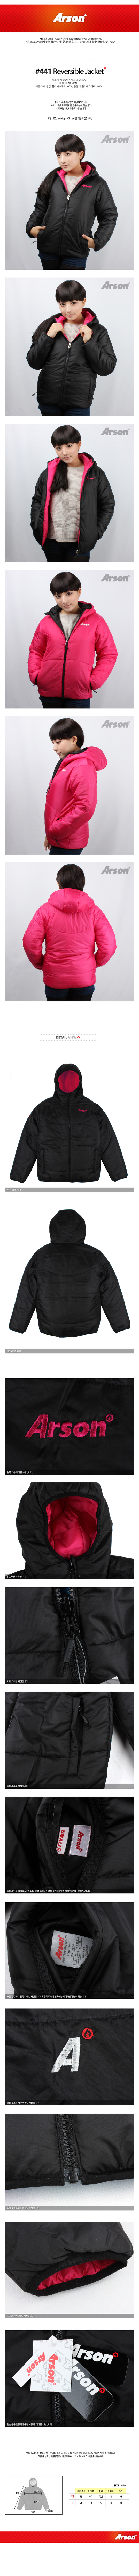 [ ARSON ] [Arson] ARSON GENUINE/441 Reversible Jacket (BLACK/PINK)/winter padding/jumper/padded jacket